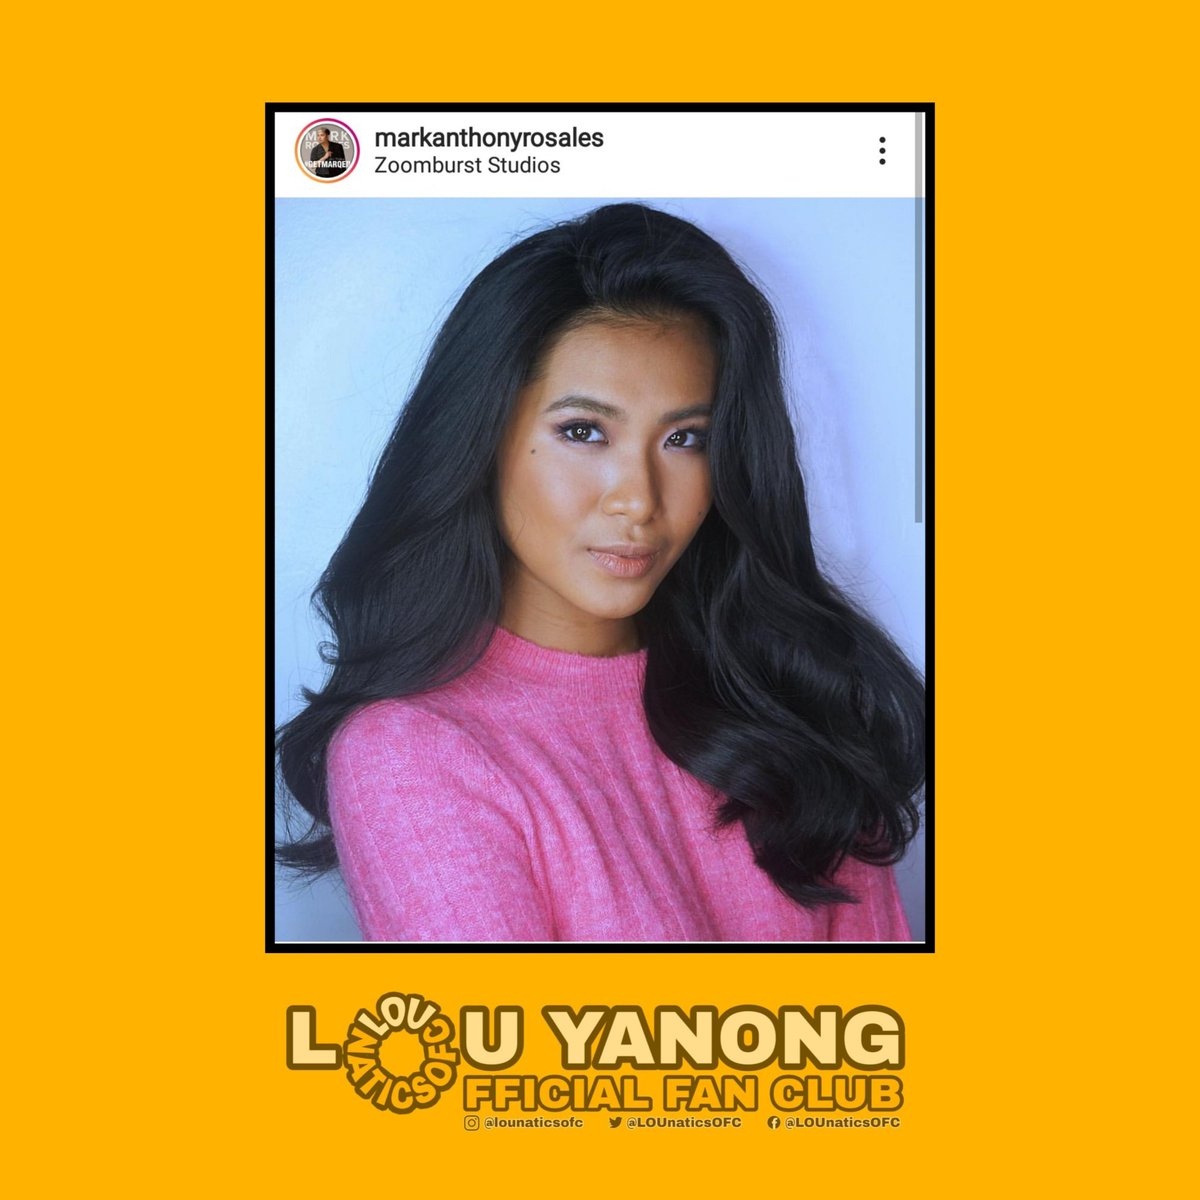 Give some love for markanthonyrosales post on IG of our gorgeous @louyanong!  https://www.instagram.com/p/BwT8B2Qge9J/?utm_source=ig_share_sheet&igshid=qhnlb5ax24ve…